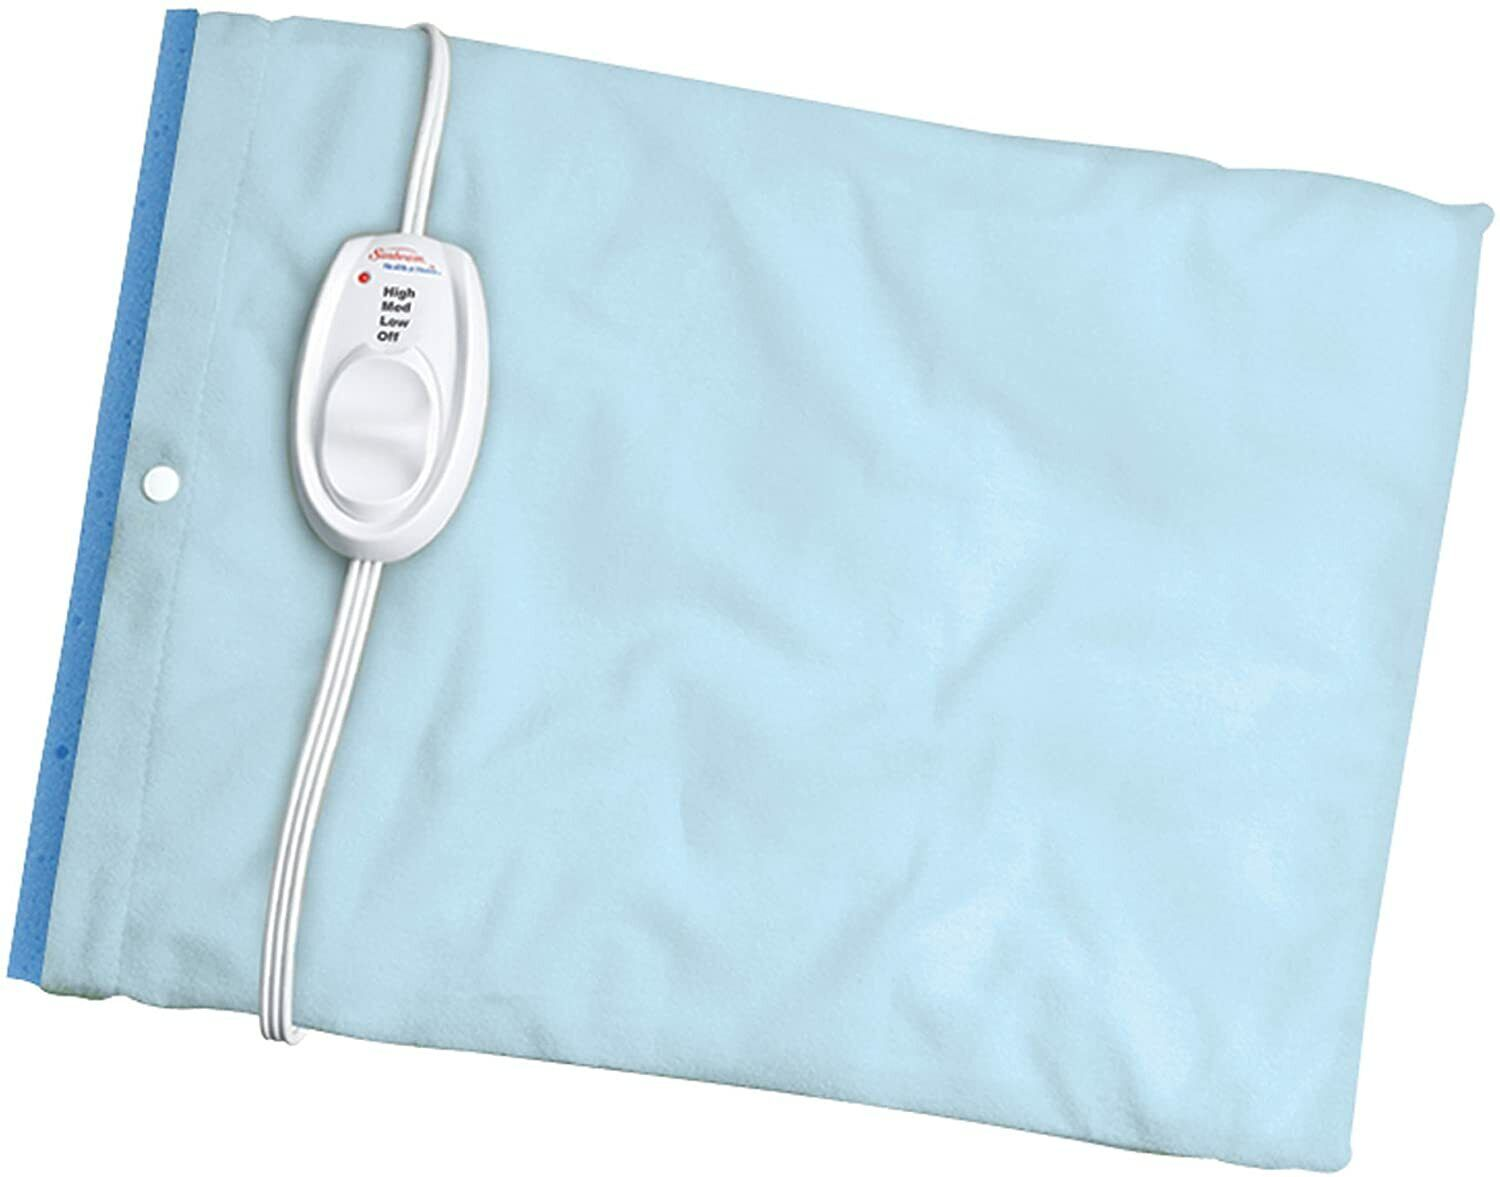 Sunbeam Heating Pad for Pain Relief-Standard Size UltraHeat,